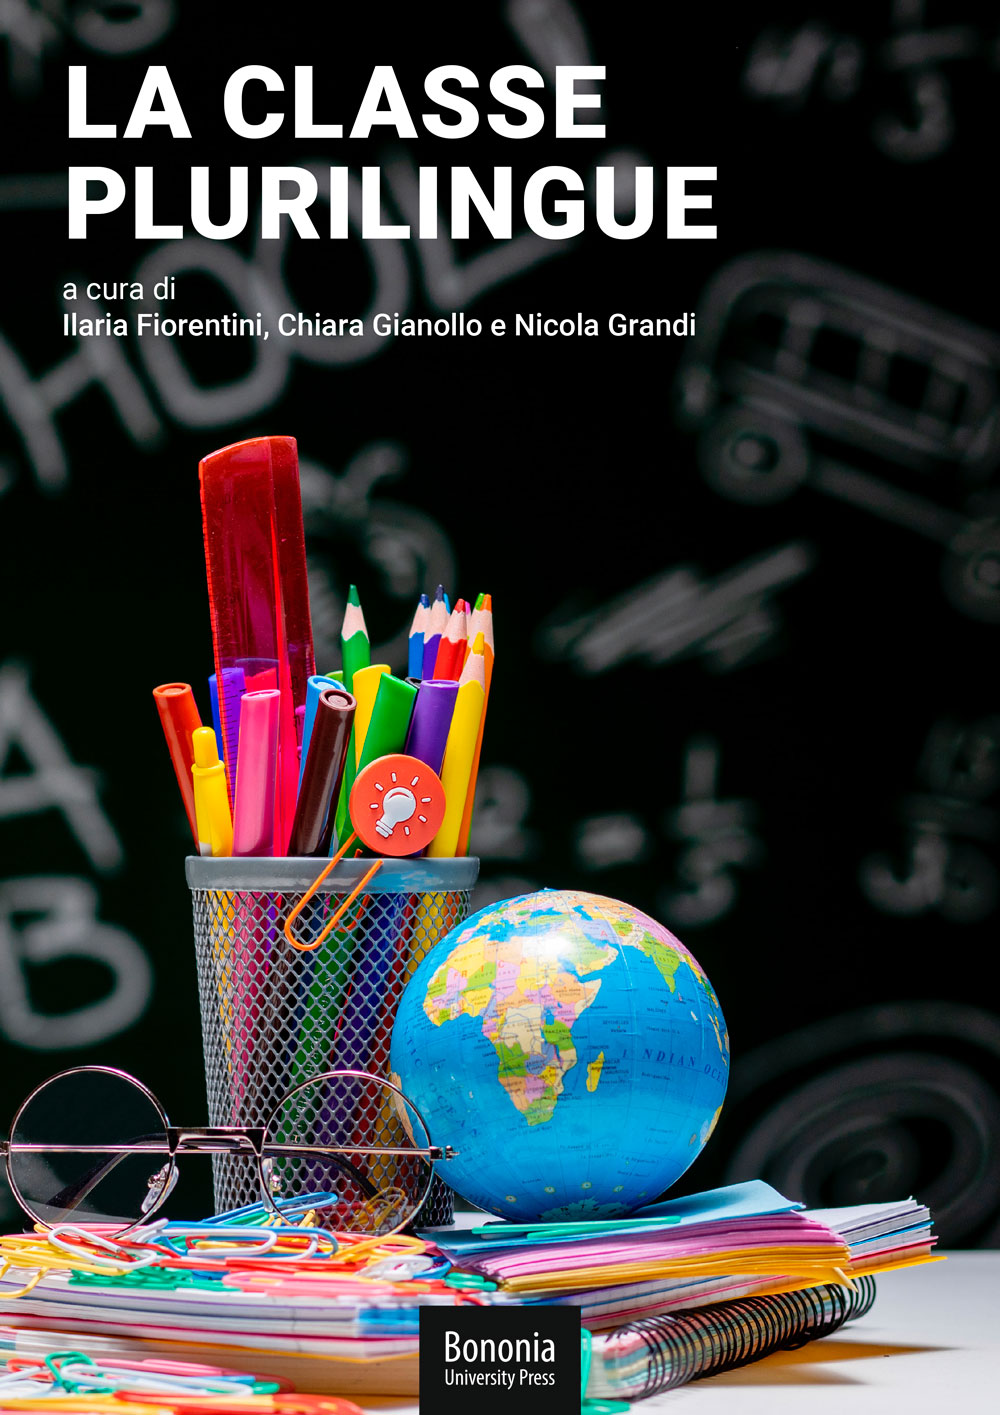 La classe plurilingue - Bononia University Press